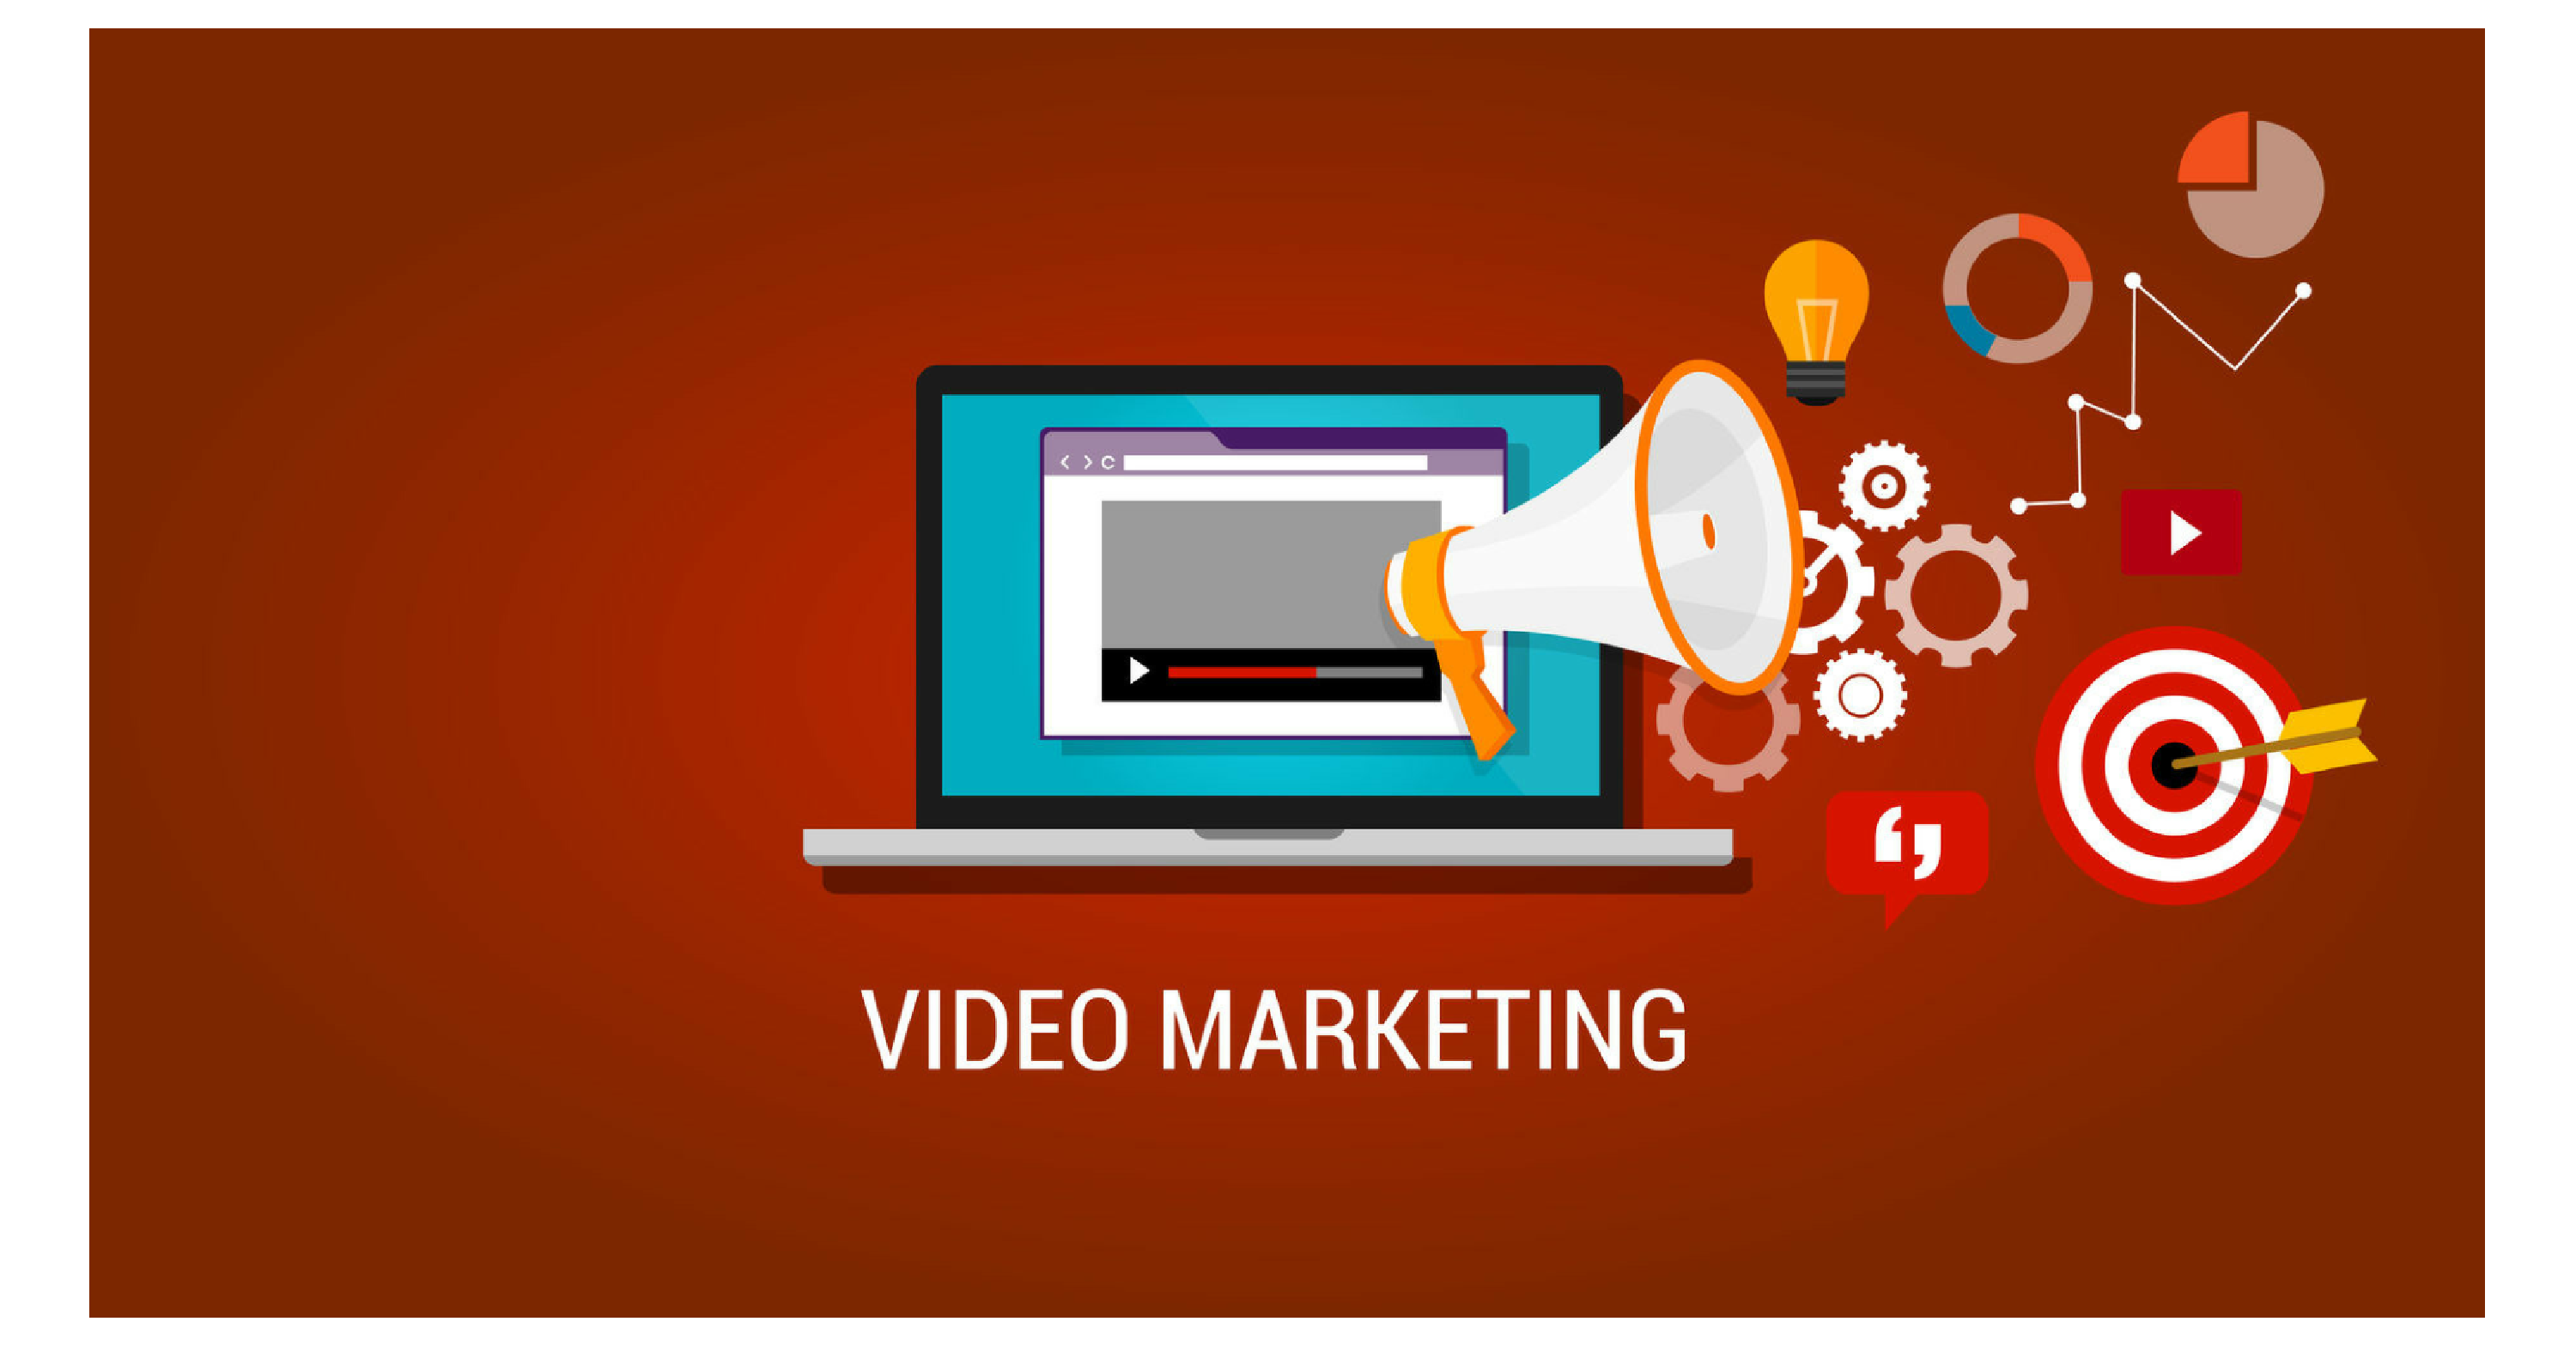 Why Video Marketing is Important to St. Augustine and First Coast Small Businesses